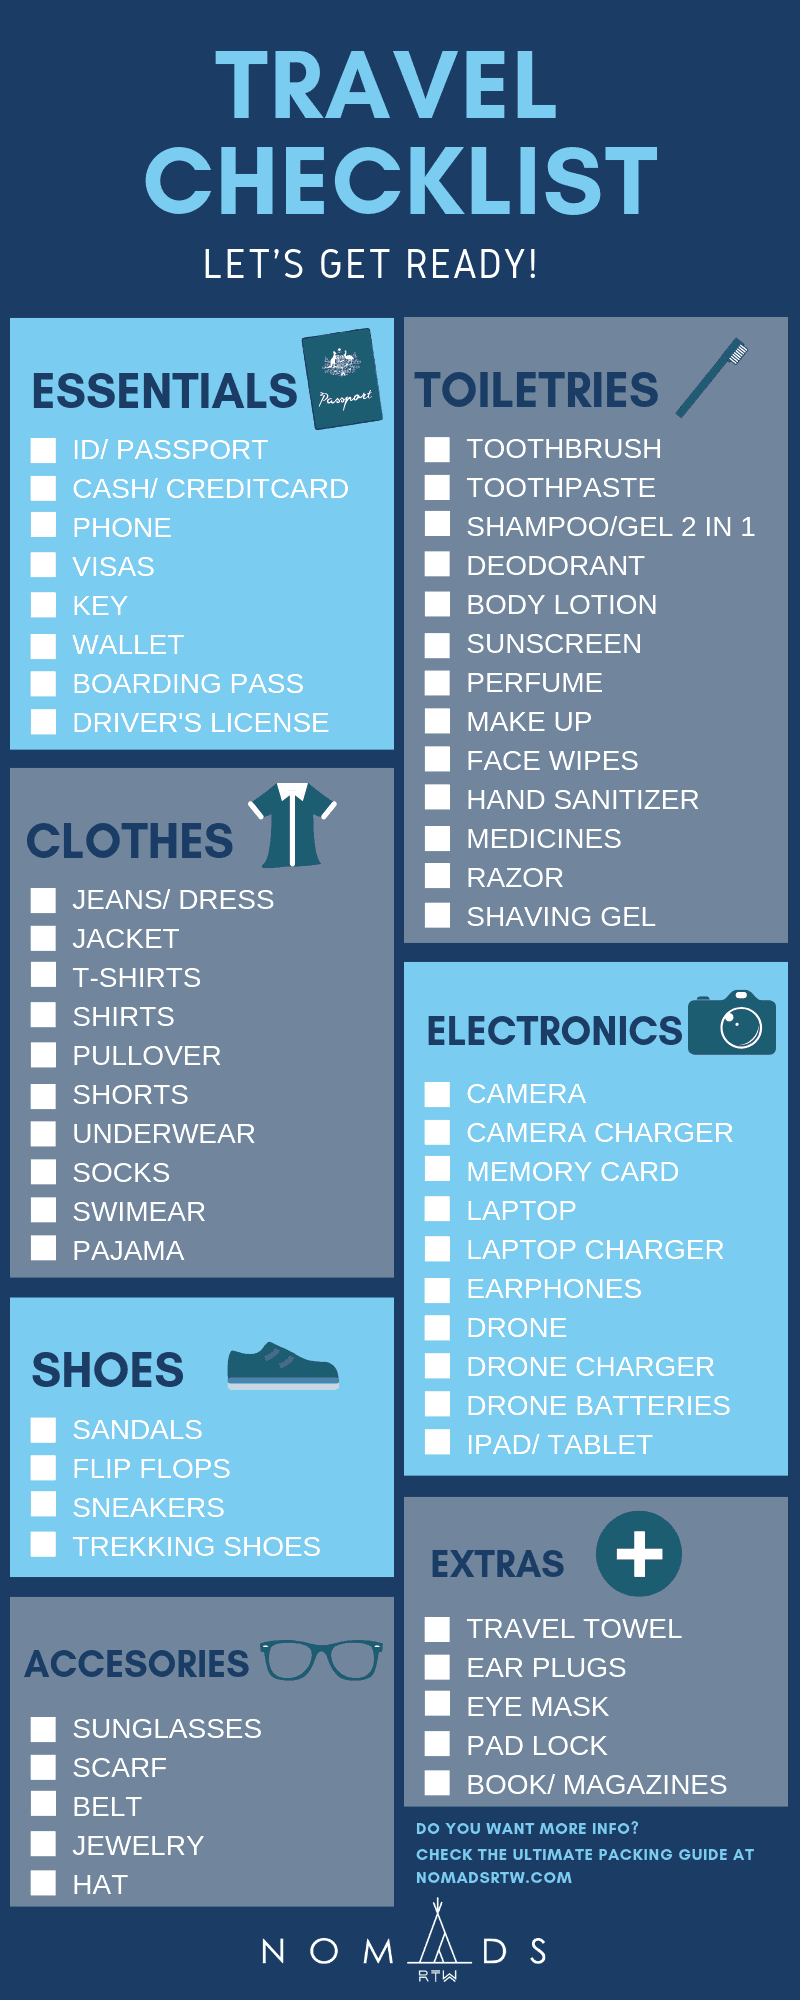 The ultimate travel packing list. Free checklist you can print and never forget about anything again in your trips.  Packing Tips   Travel Checklist   Free Printable   Packing List   Backpacking List   #ultimate#packing#checklist#travelchecklist #packingtips #packinglist